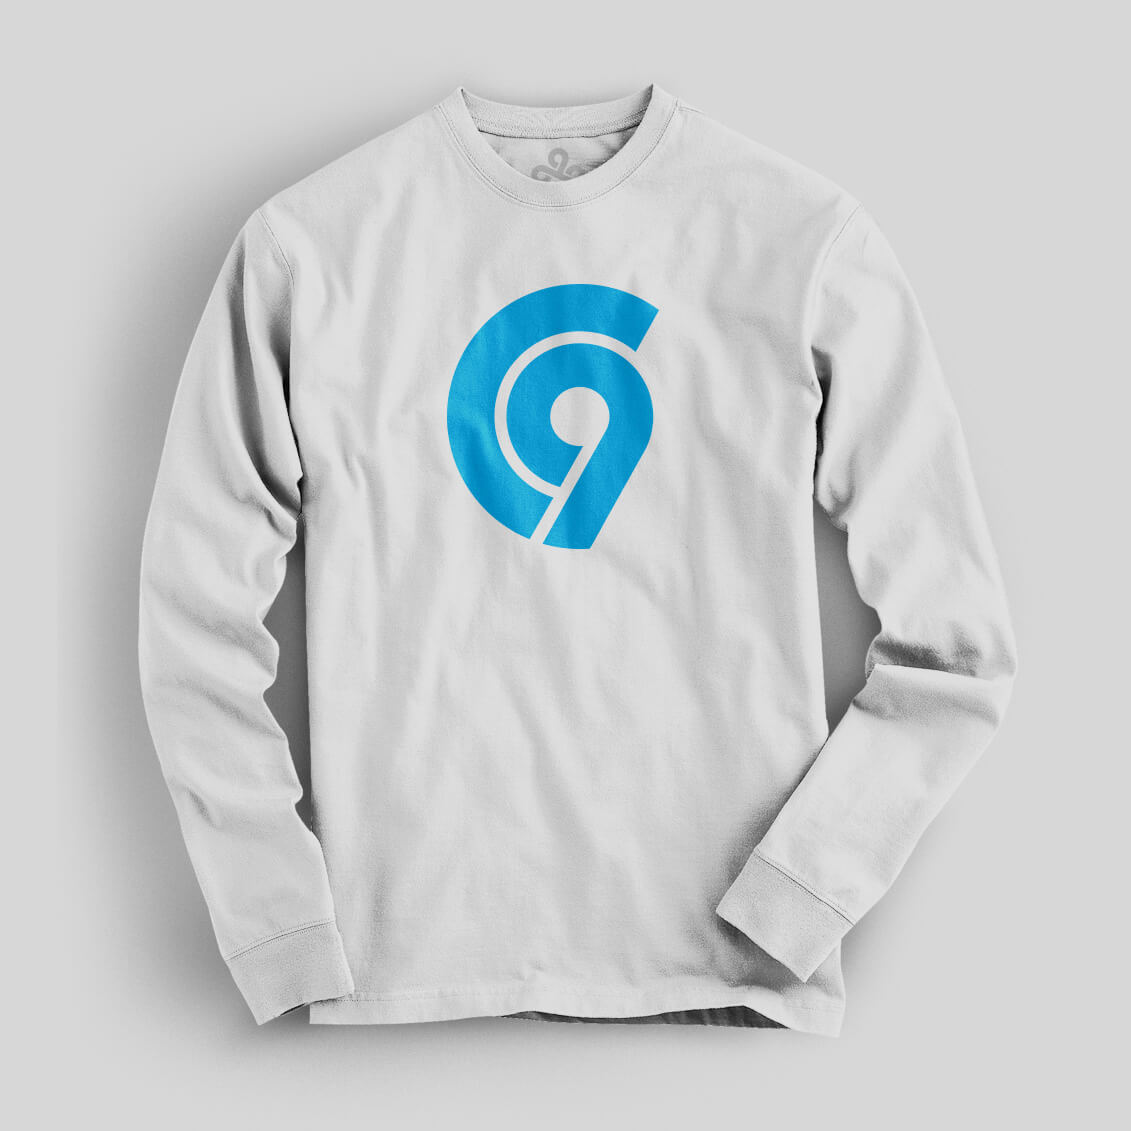 Store Cloud9 Old Circuit Board United Kingdom Flag Tshirt White Long Sleeve T Shirt